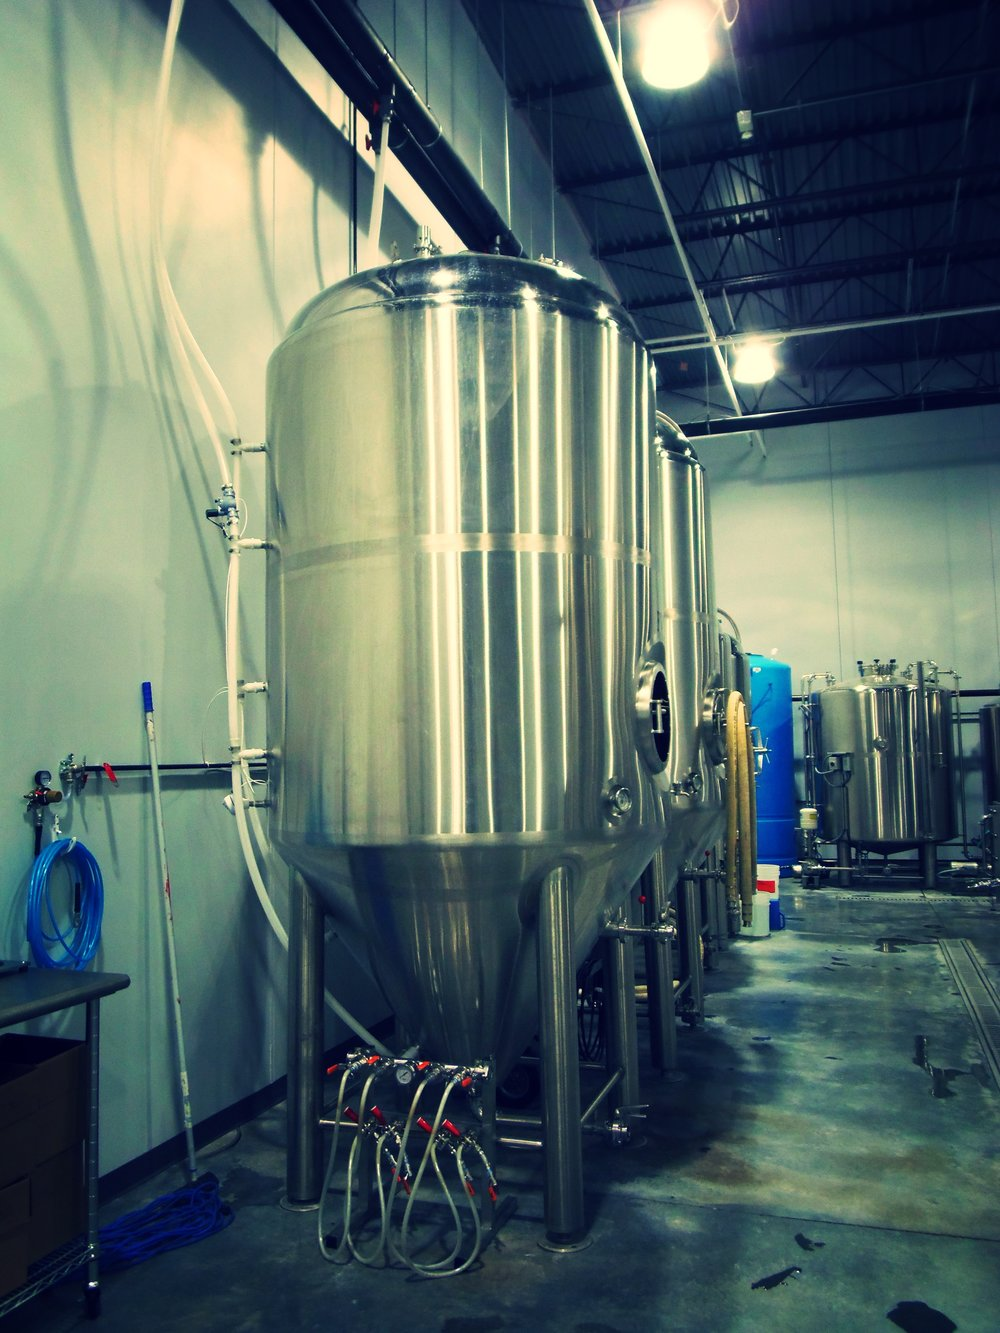 What an immaculate space for brewing beer! Great layout with room to expand.